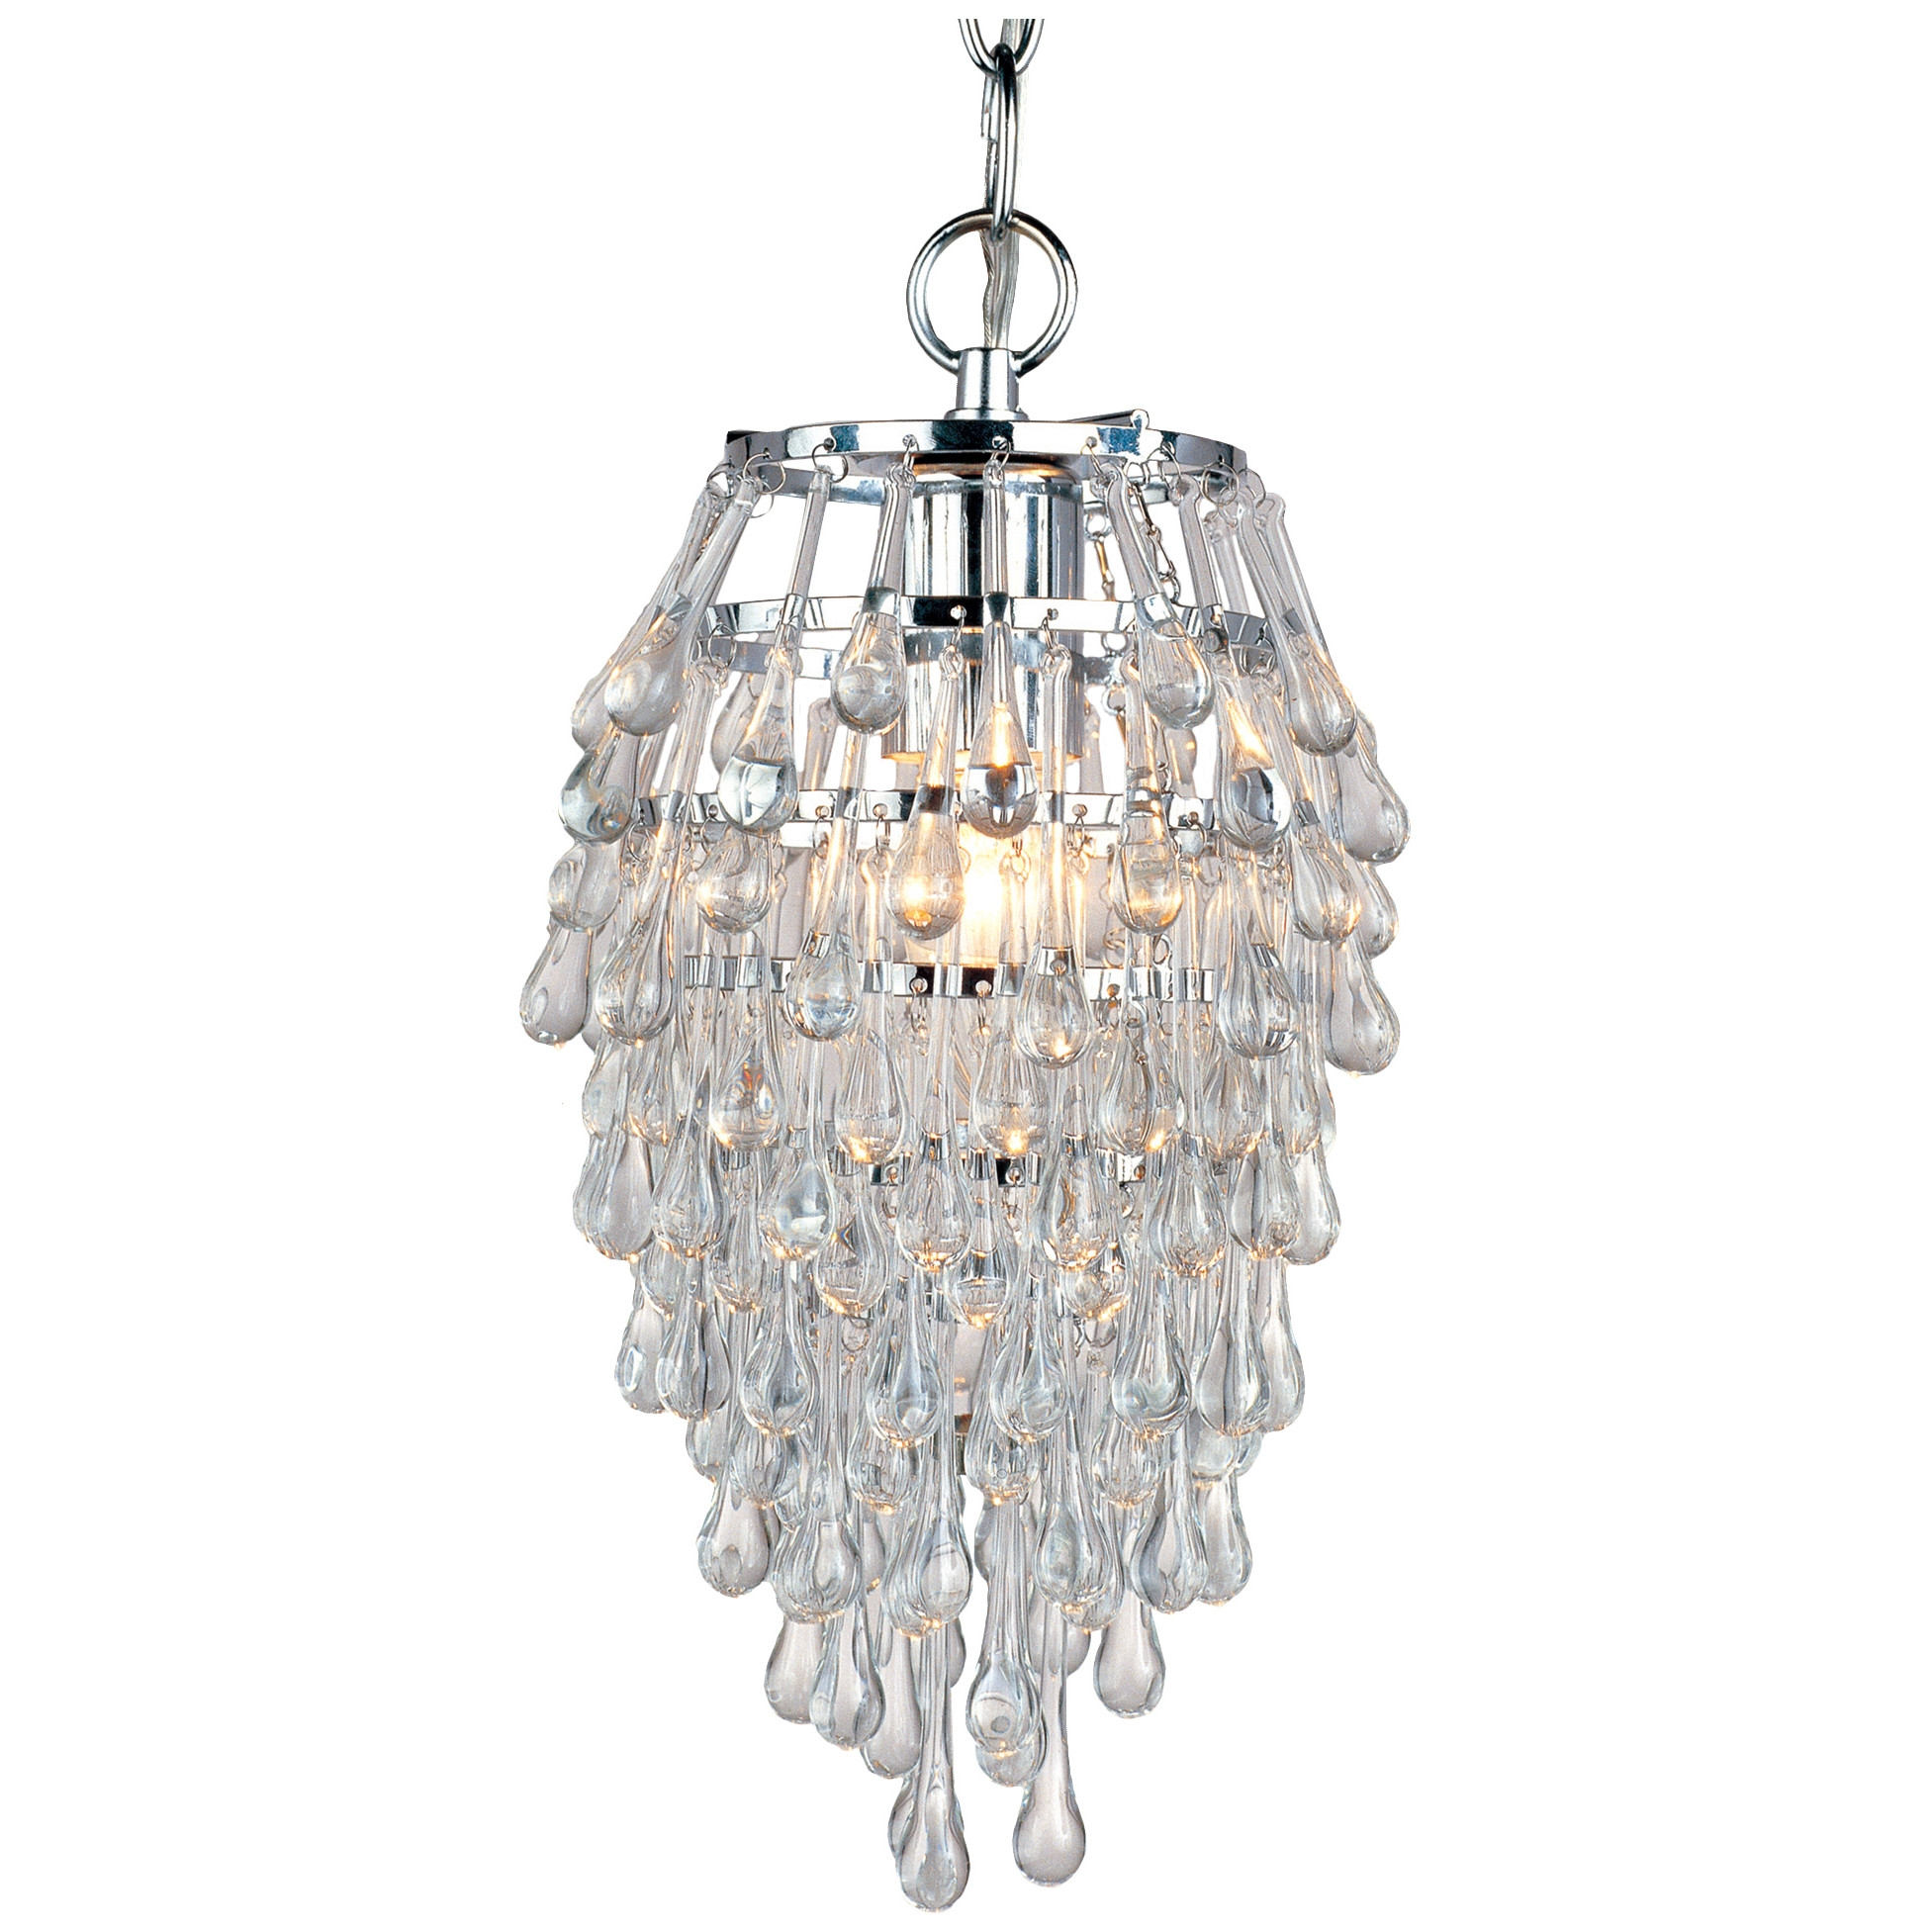 Popular Photo of Small Glass Chandeliers